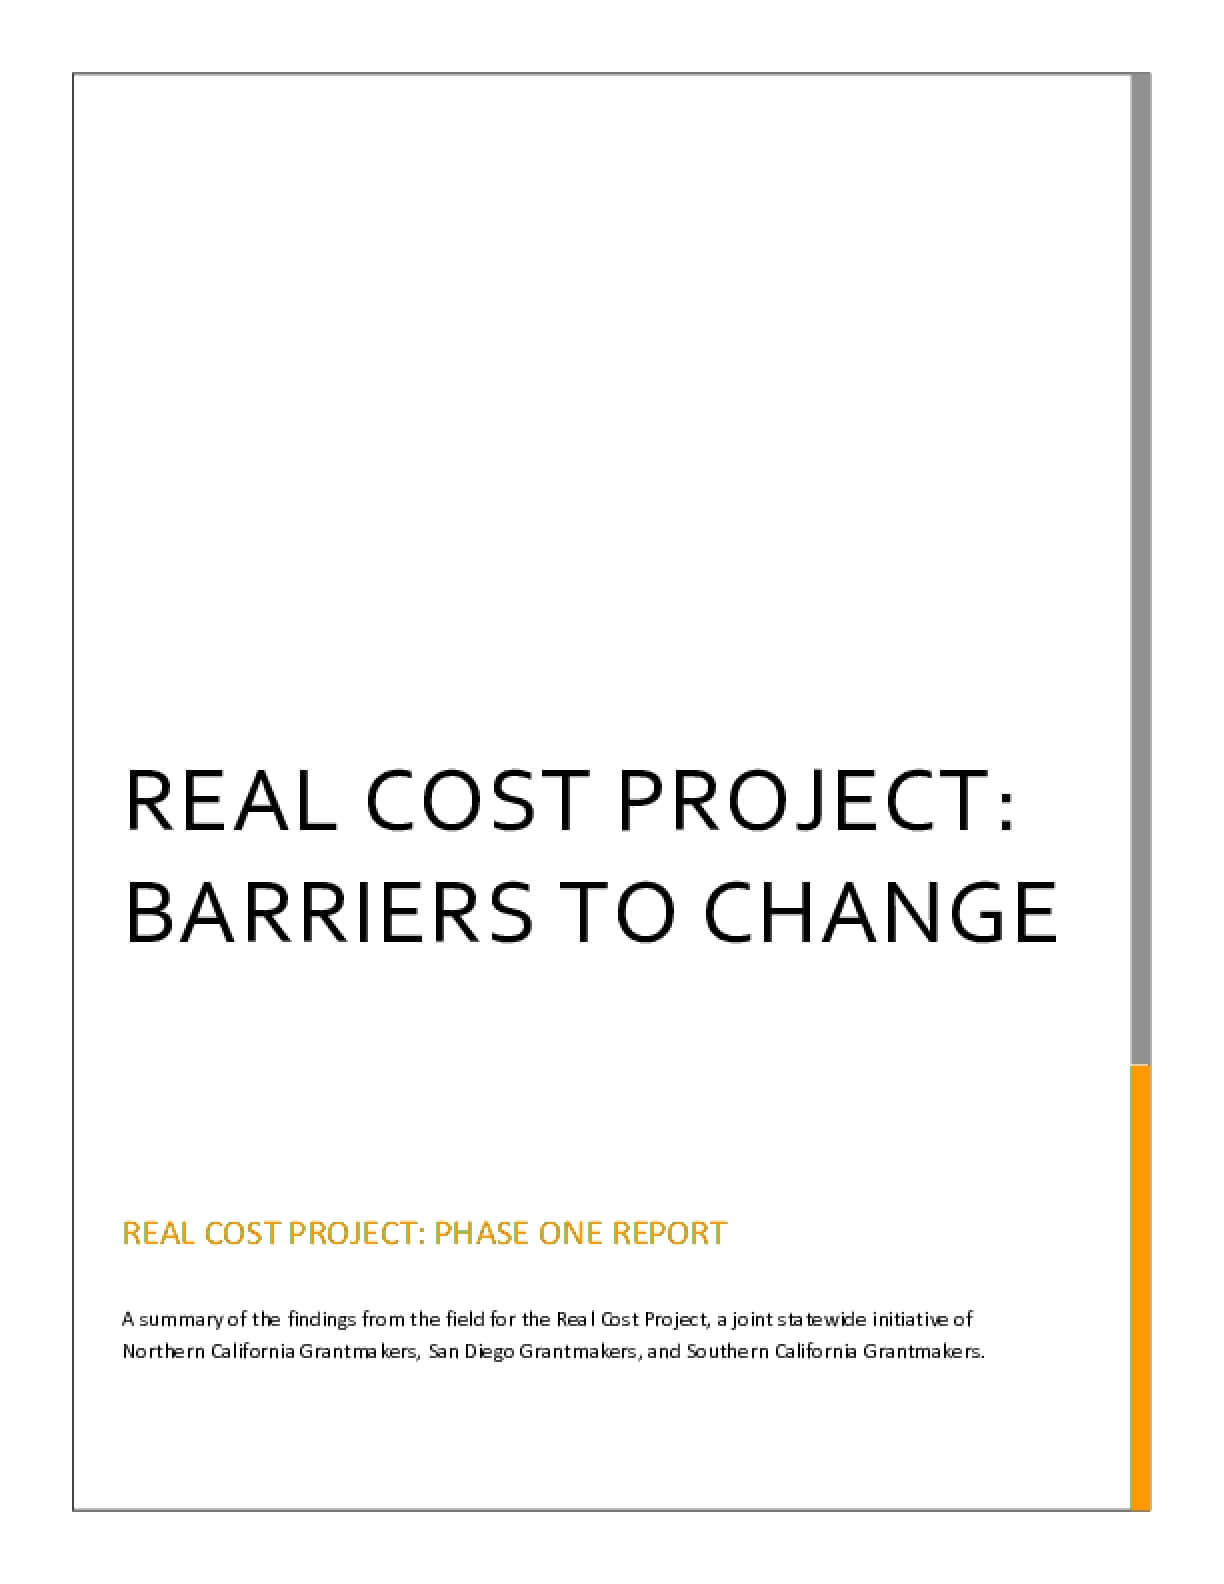 Real Cost Project: Barriers to Change